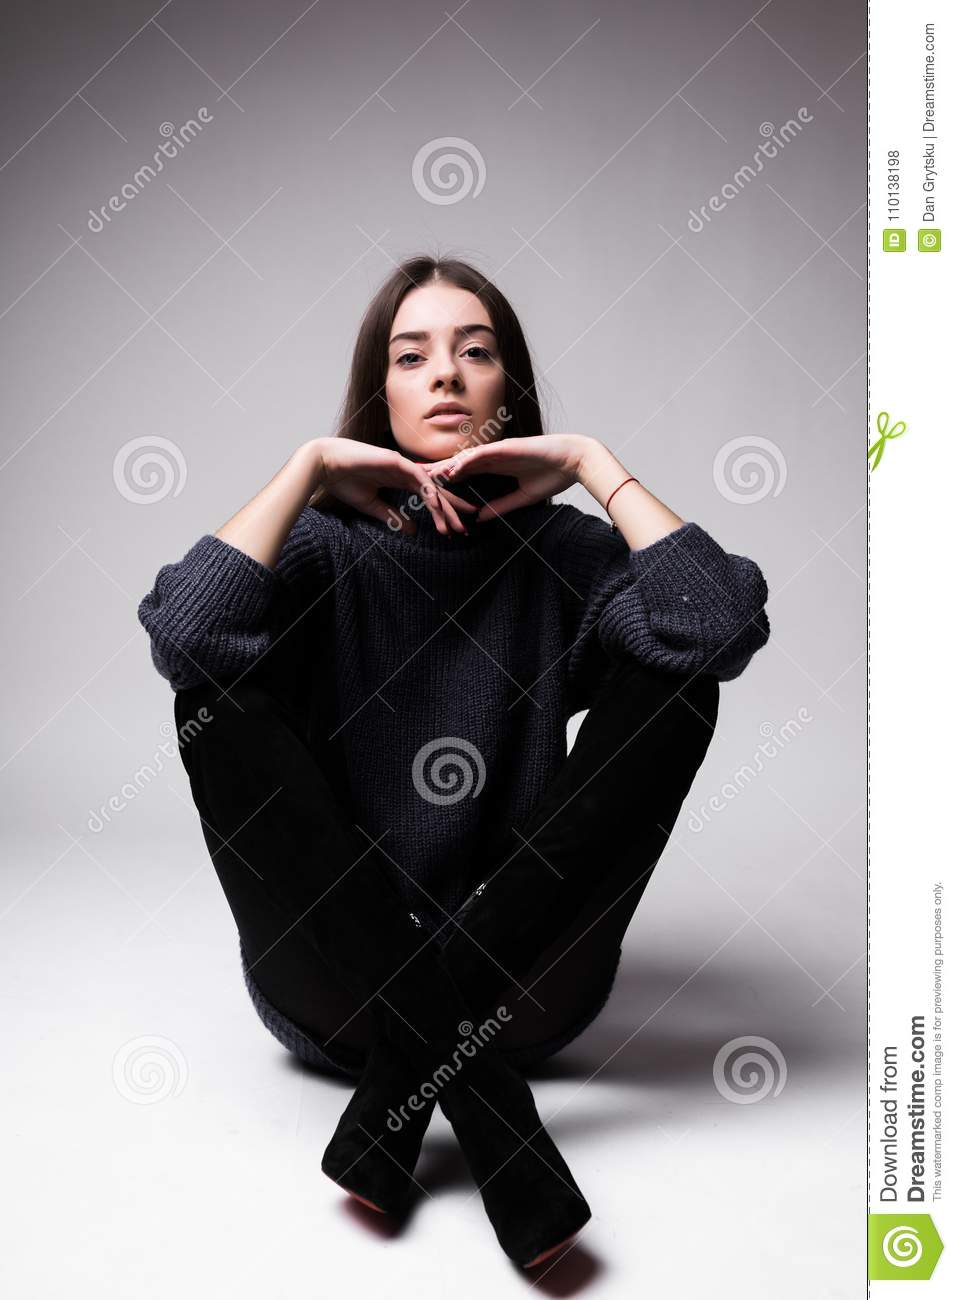 Fashion model woman in modern clothes sitting on the floor isolated on white background